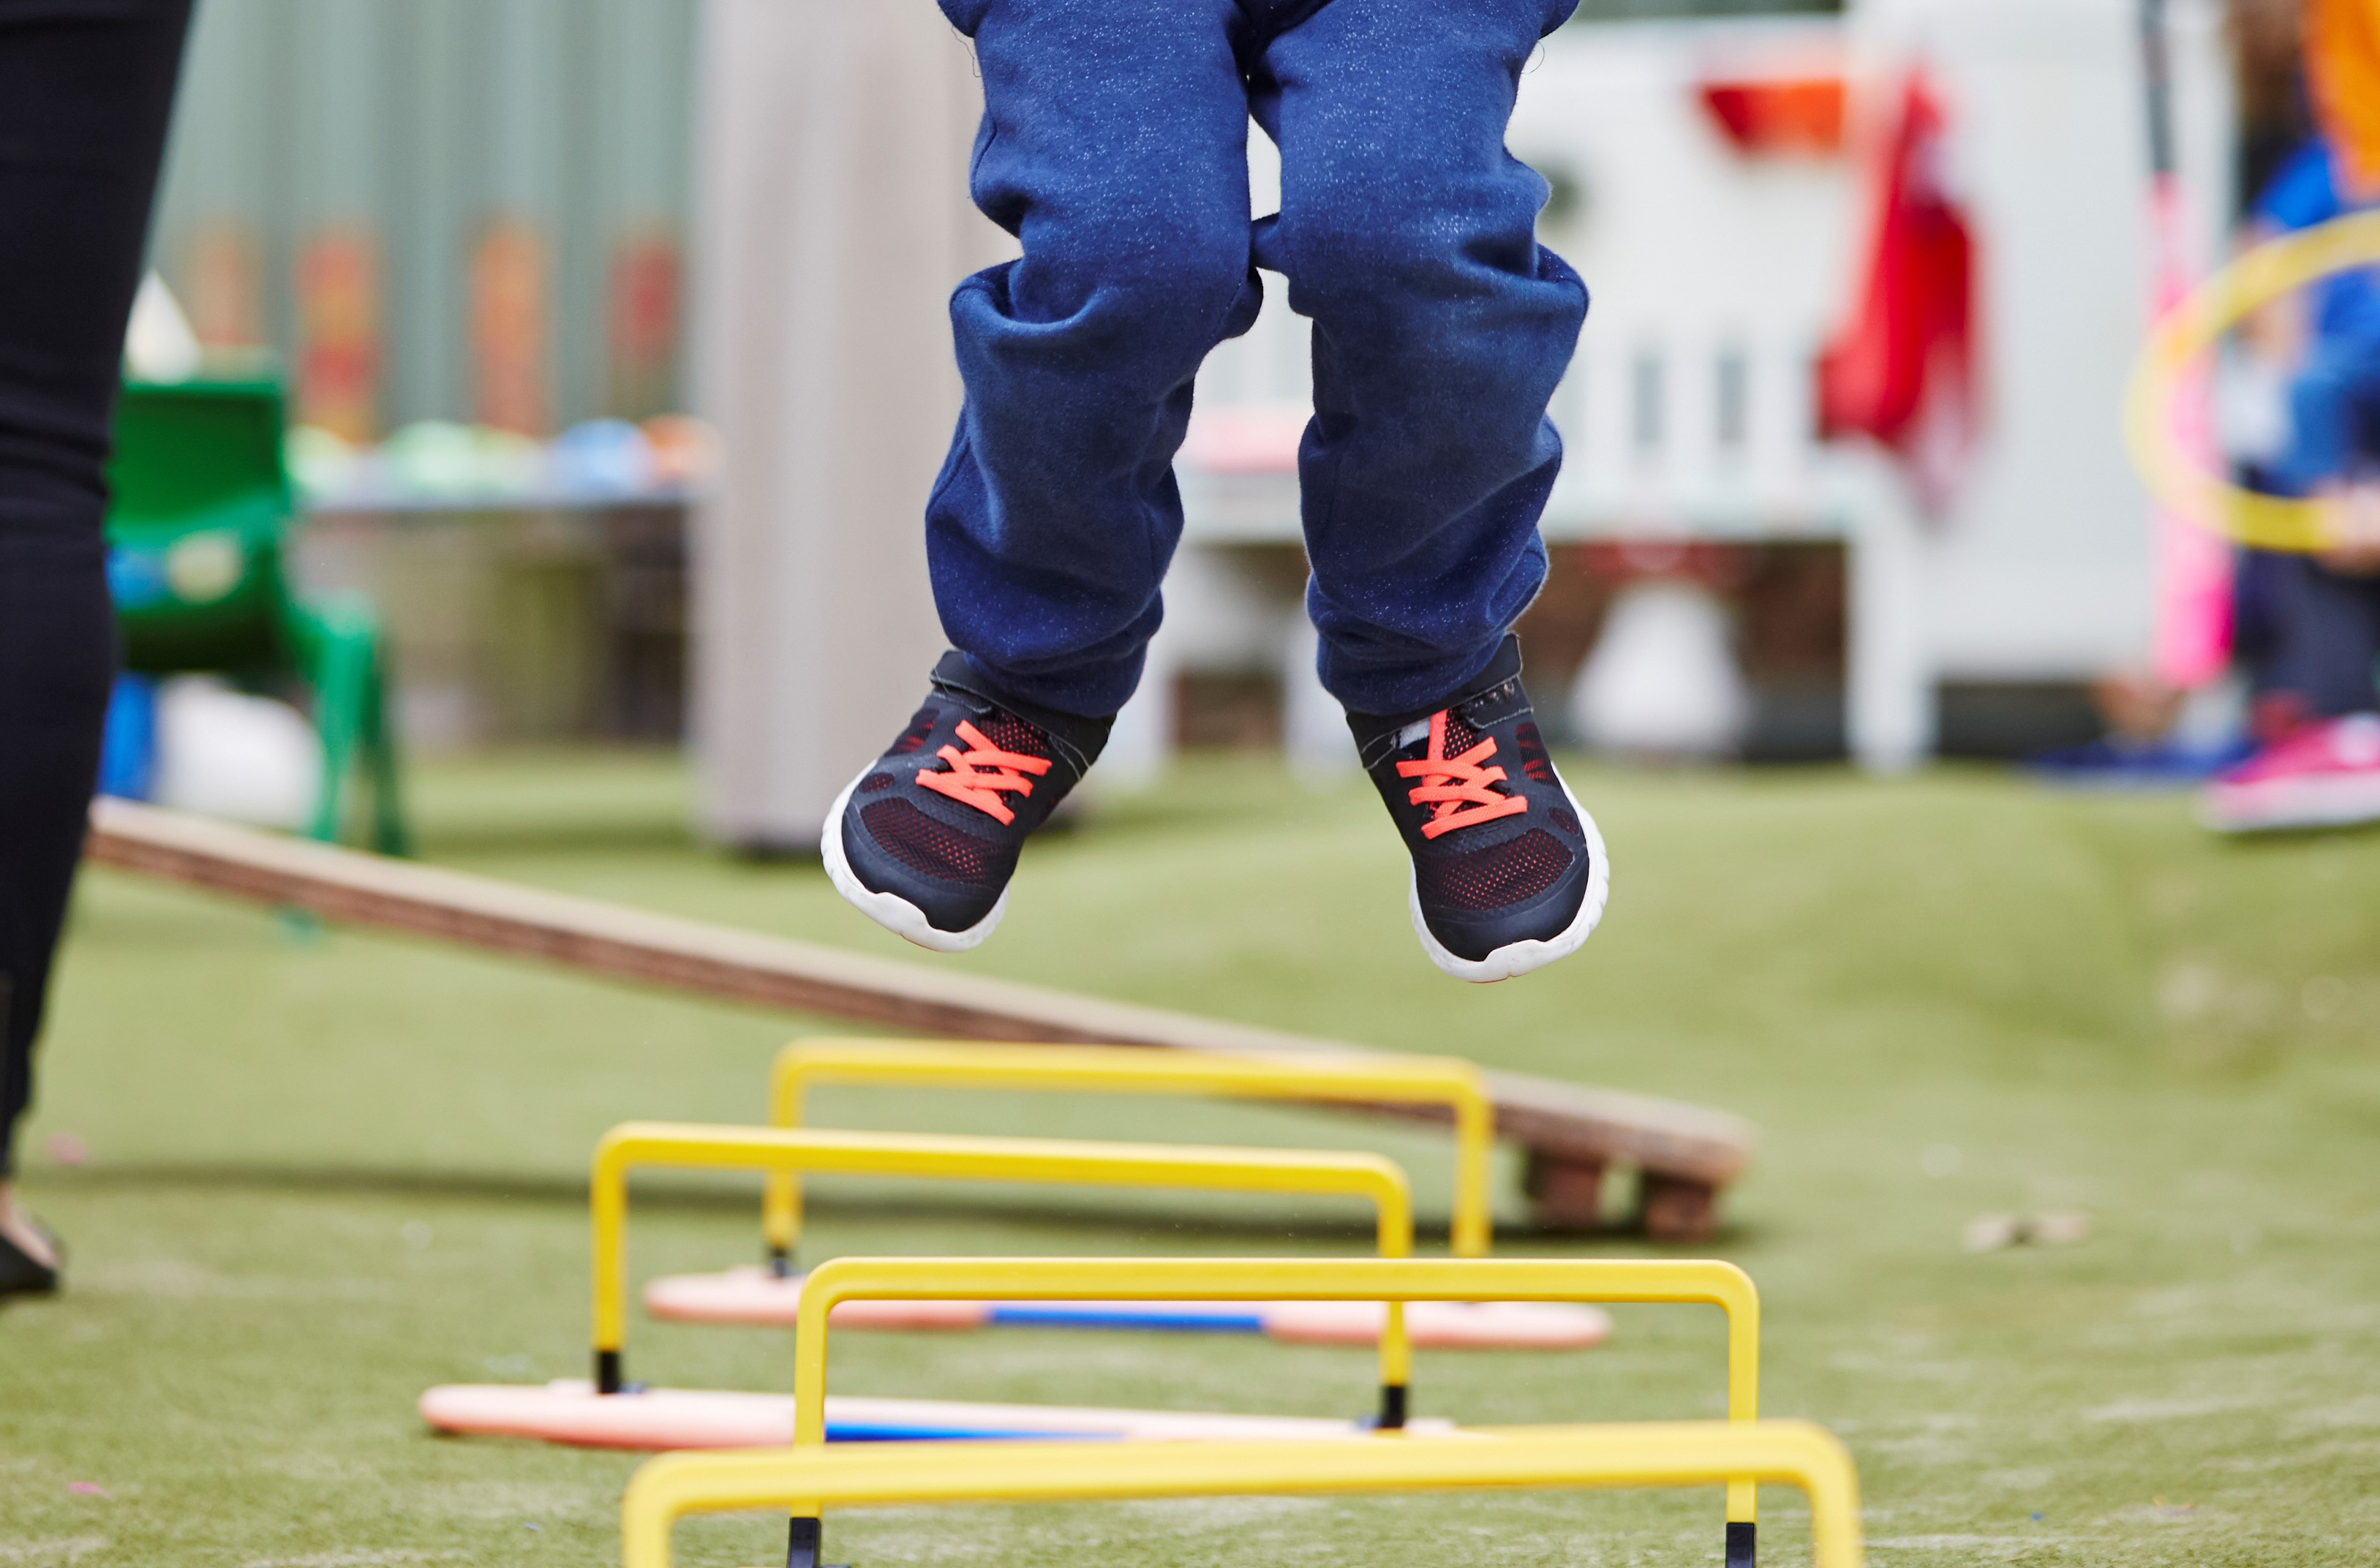 Young boy leaping over obstacle course